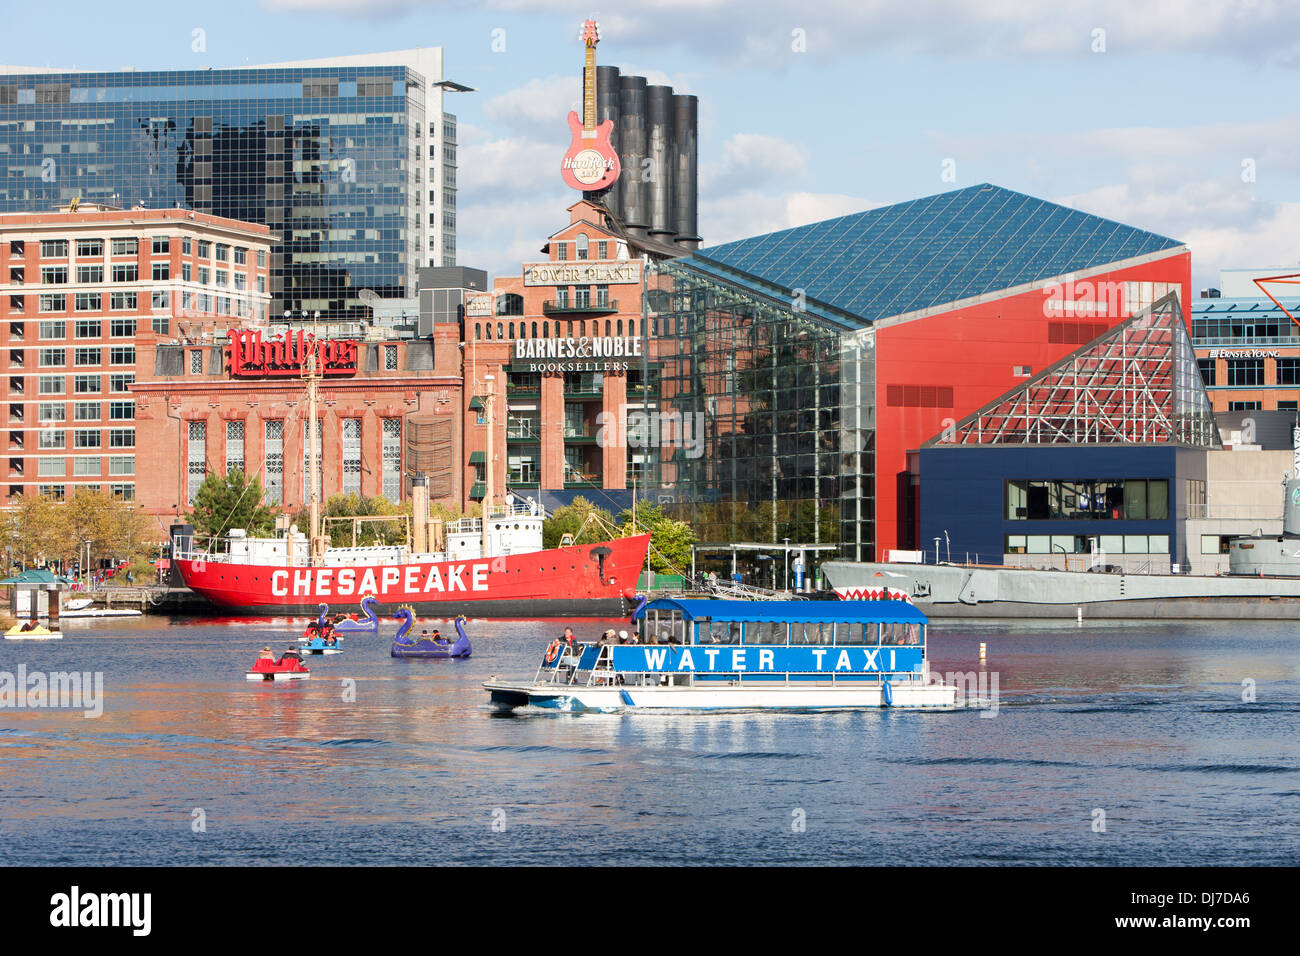 Tourists enjoy paddle boats as a Water Taxi approaches the Harborplace landing in the Inner Harbor of Baltimore, Maryland. - Stock Image